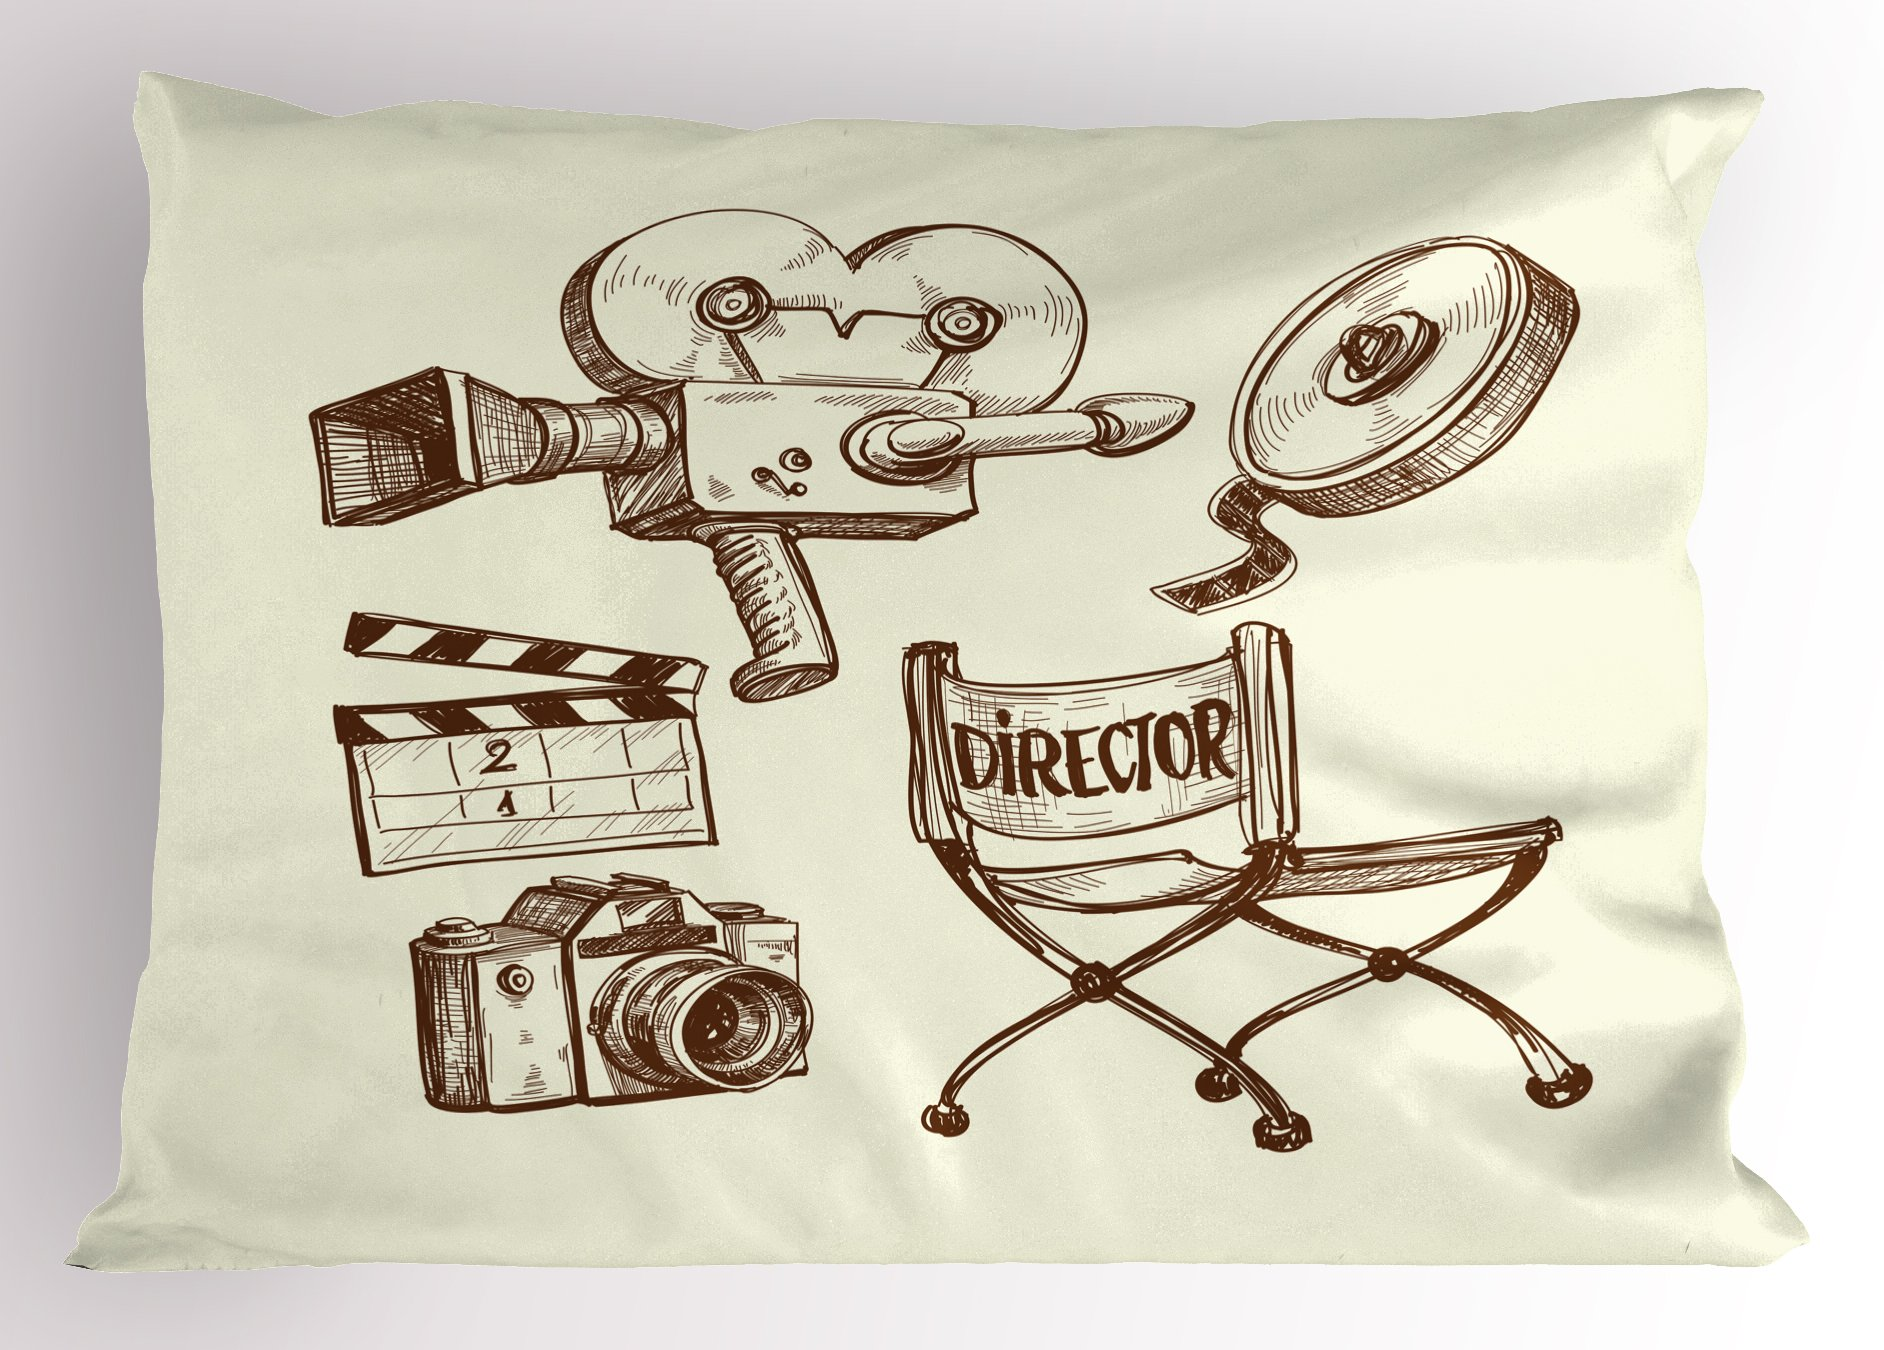 Ambesonne Movie Theater Pillow Sham, Photography and Cinema Vintage Set in Sketch Art Style Director Shooting, Decorative Standard Queen Size Printed Pillowcase, 30 X 20 Inches, Beige Brown